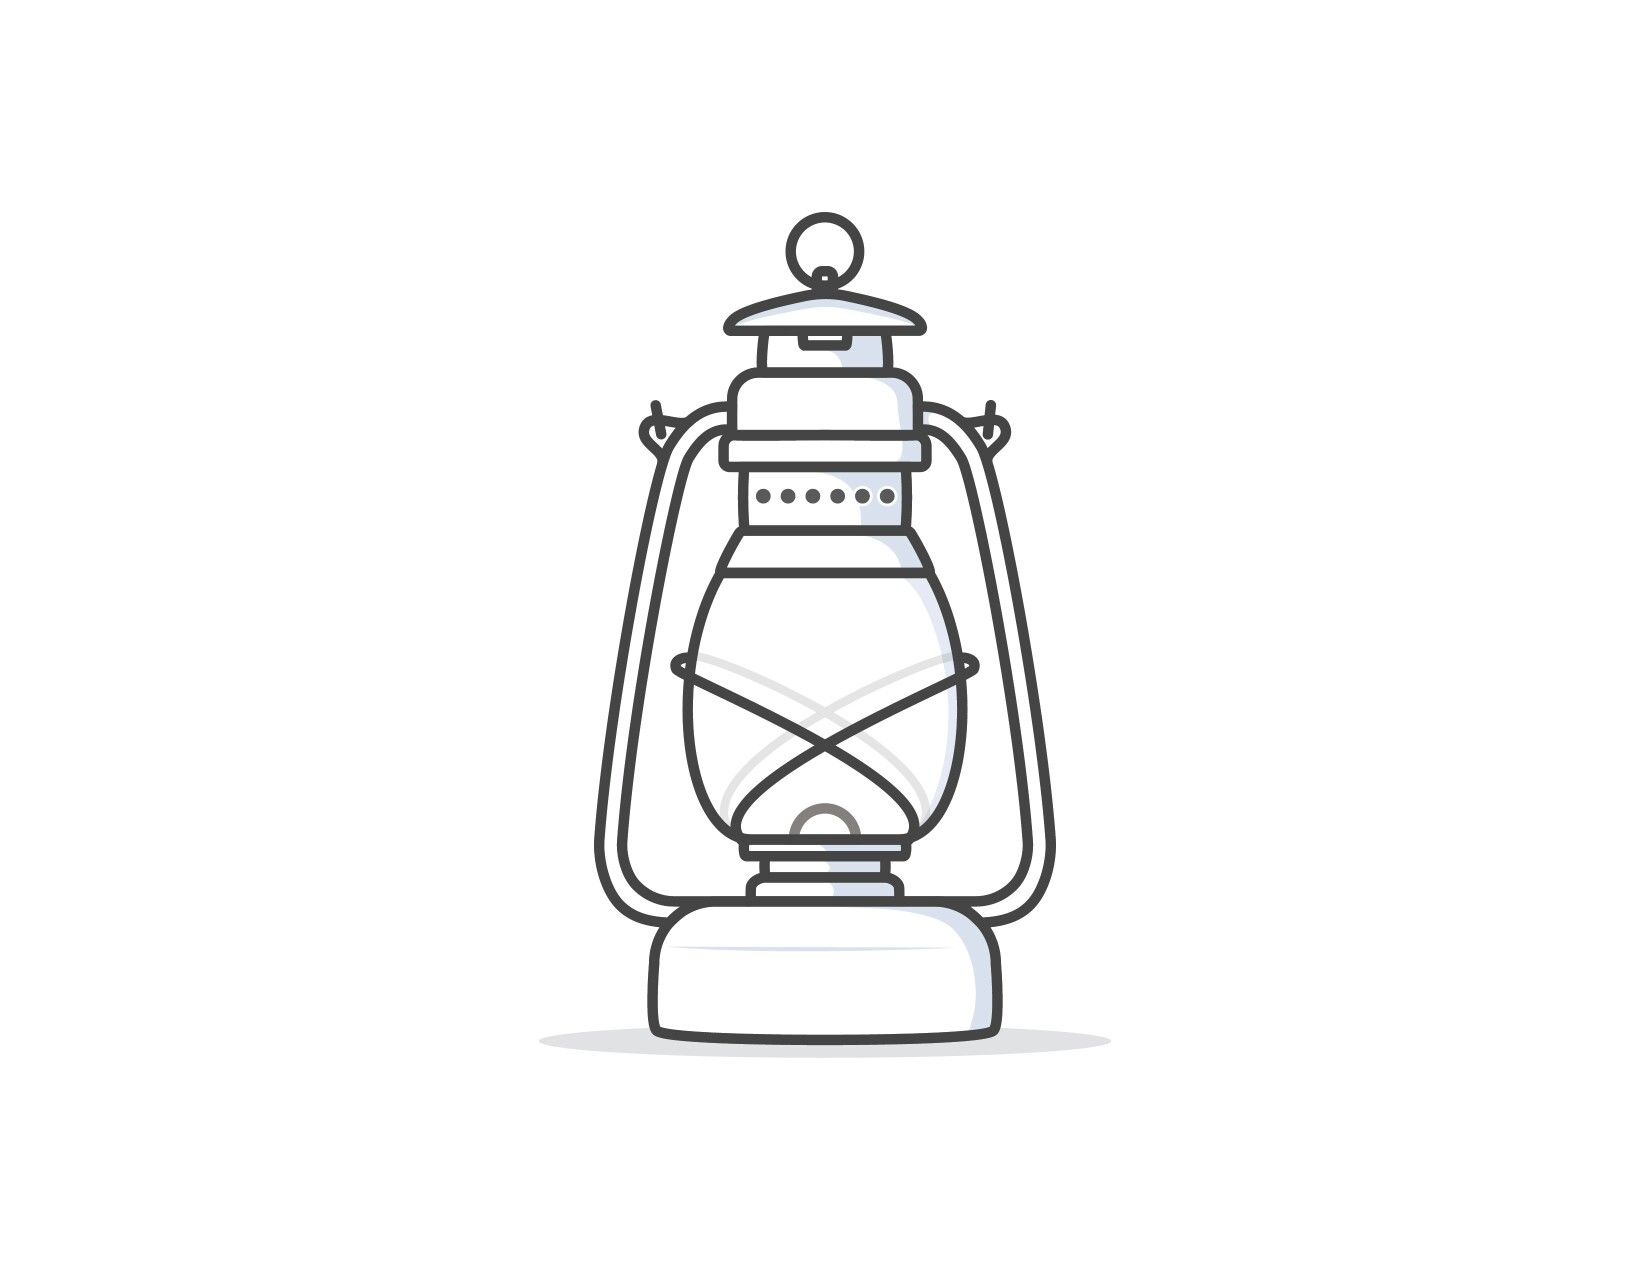 Lantern Clipart Paraffin Lamp Lantern Paraffin Lamp Transparent Free For Download On Webstockreview 2021